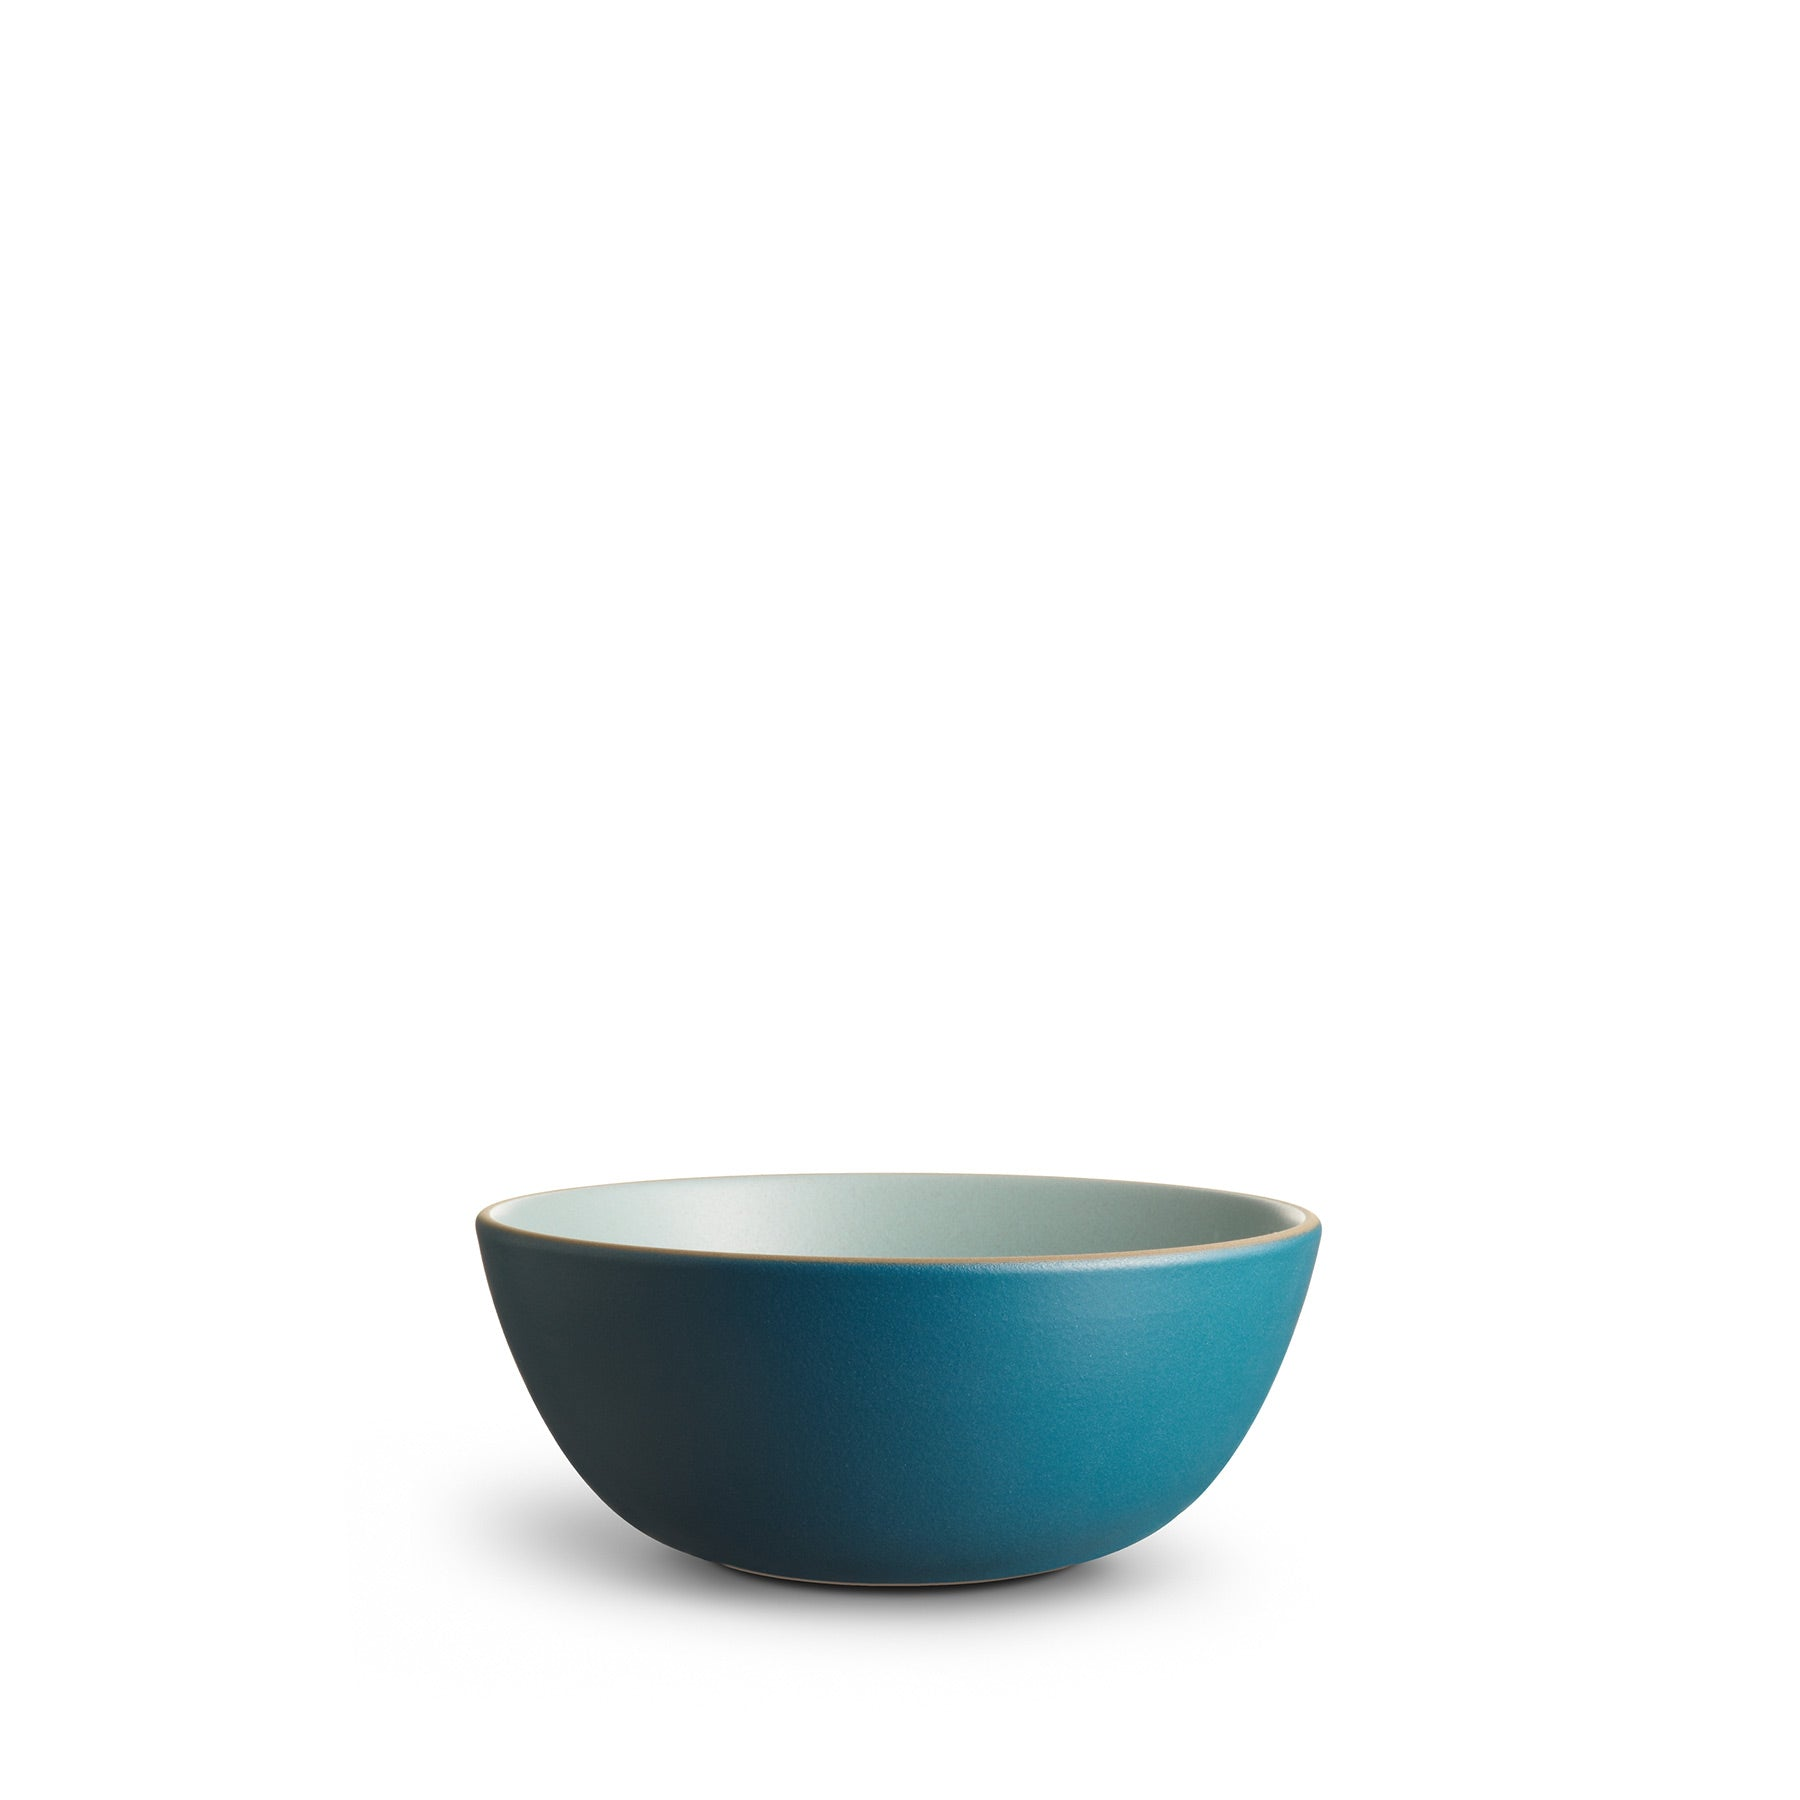 Vegetable Bowl - Aqua Turquoise